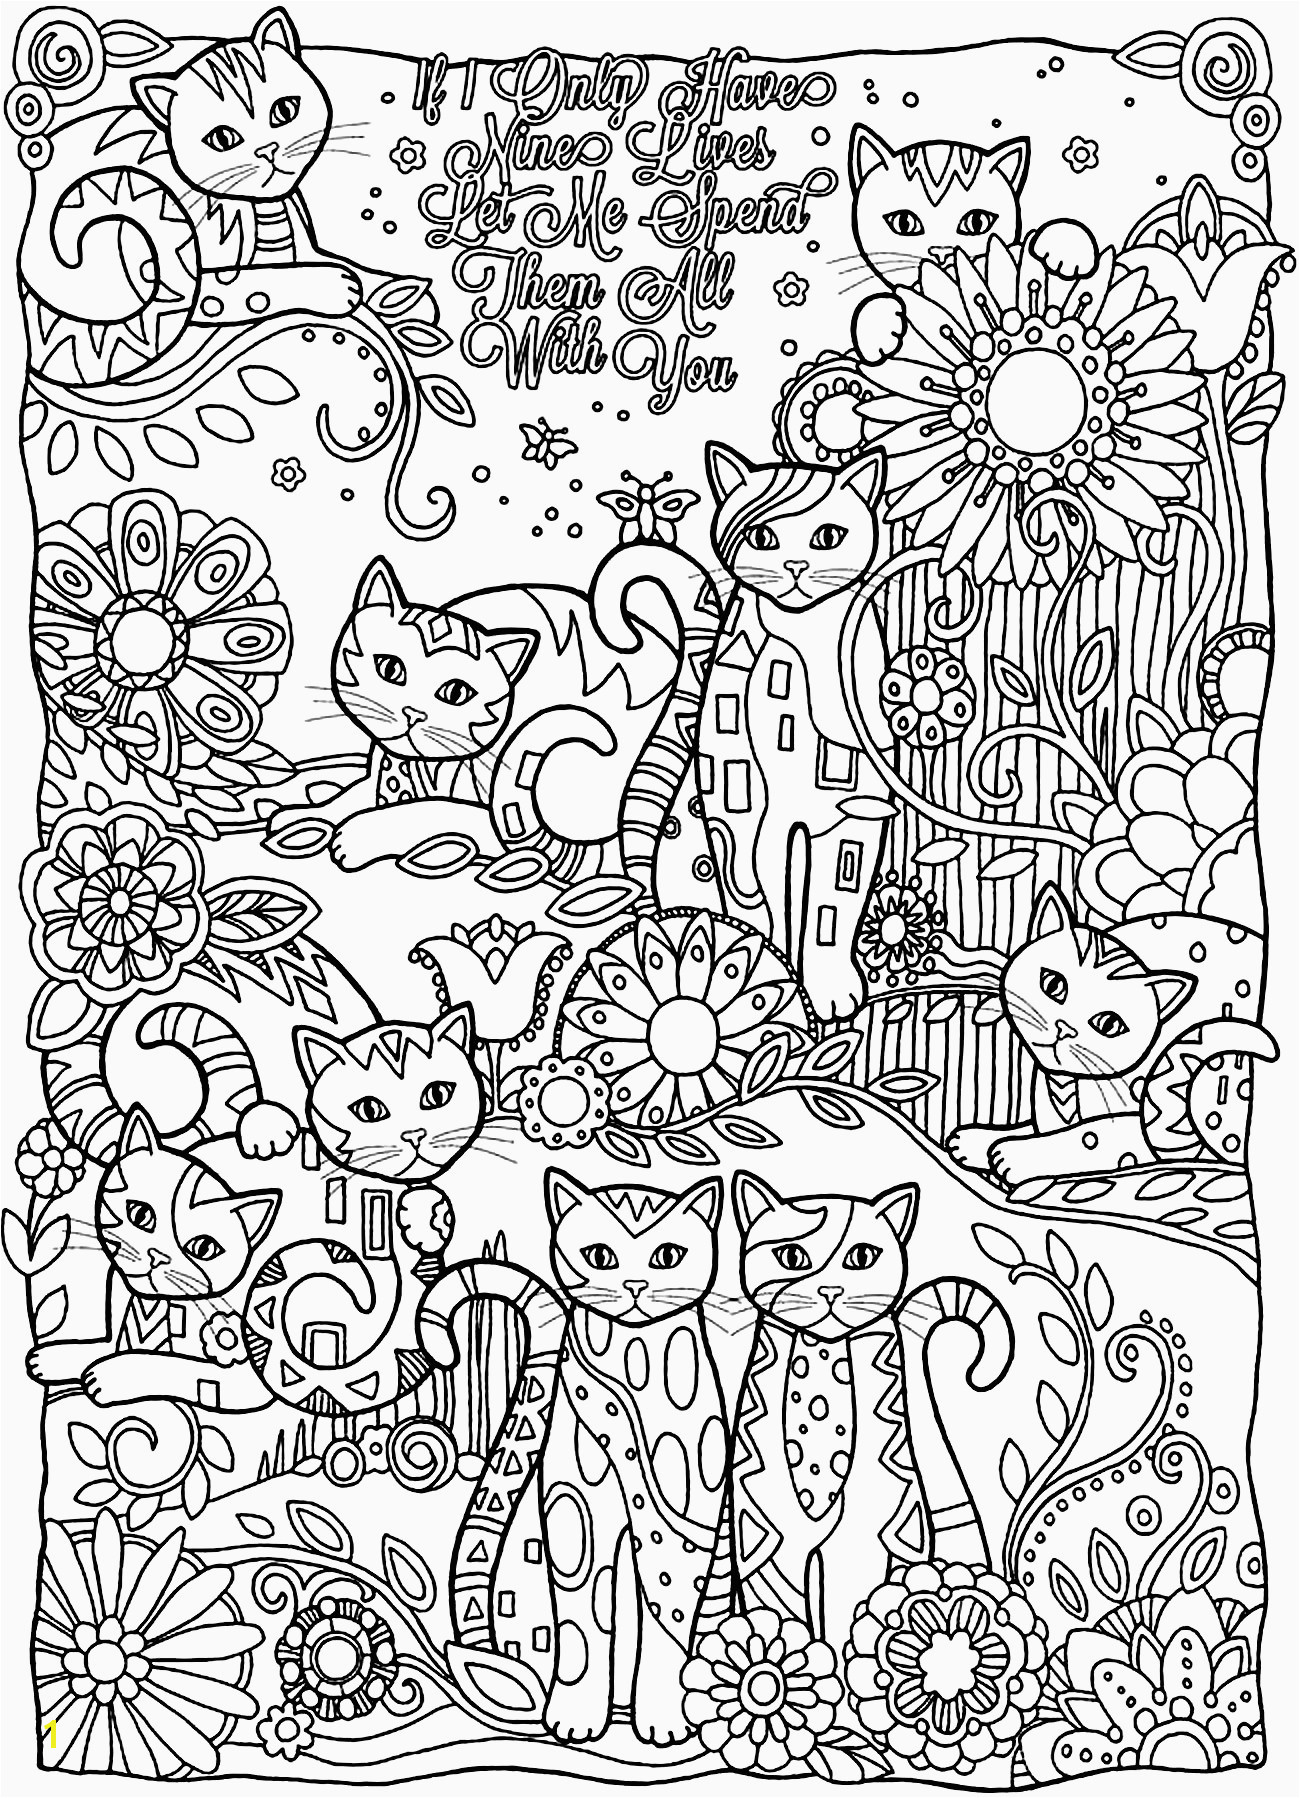 Free Printable Coloring Pages Respect Fresh Cute Printable Coloring Pages New Printable Od Dog Coloring